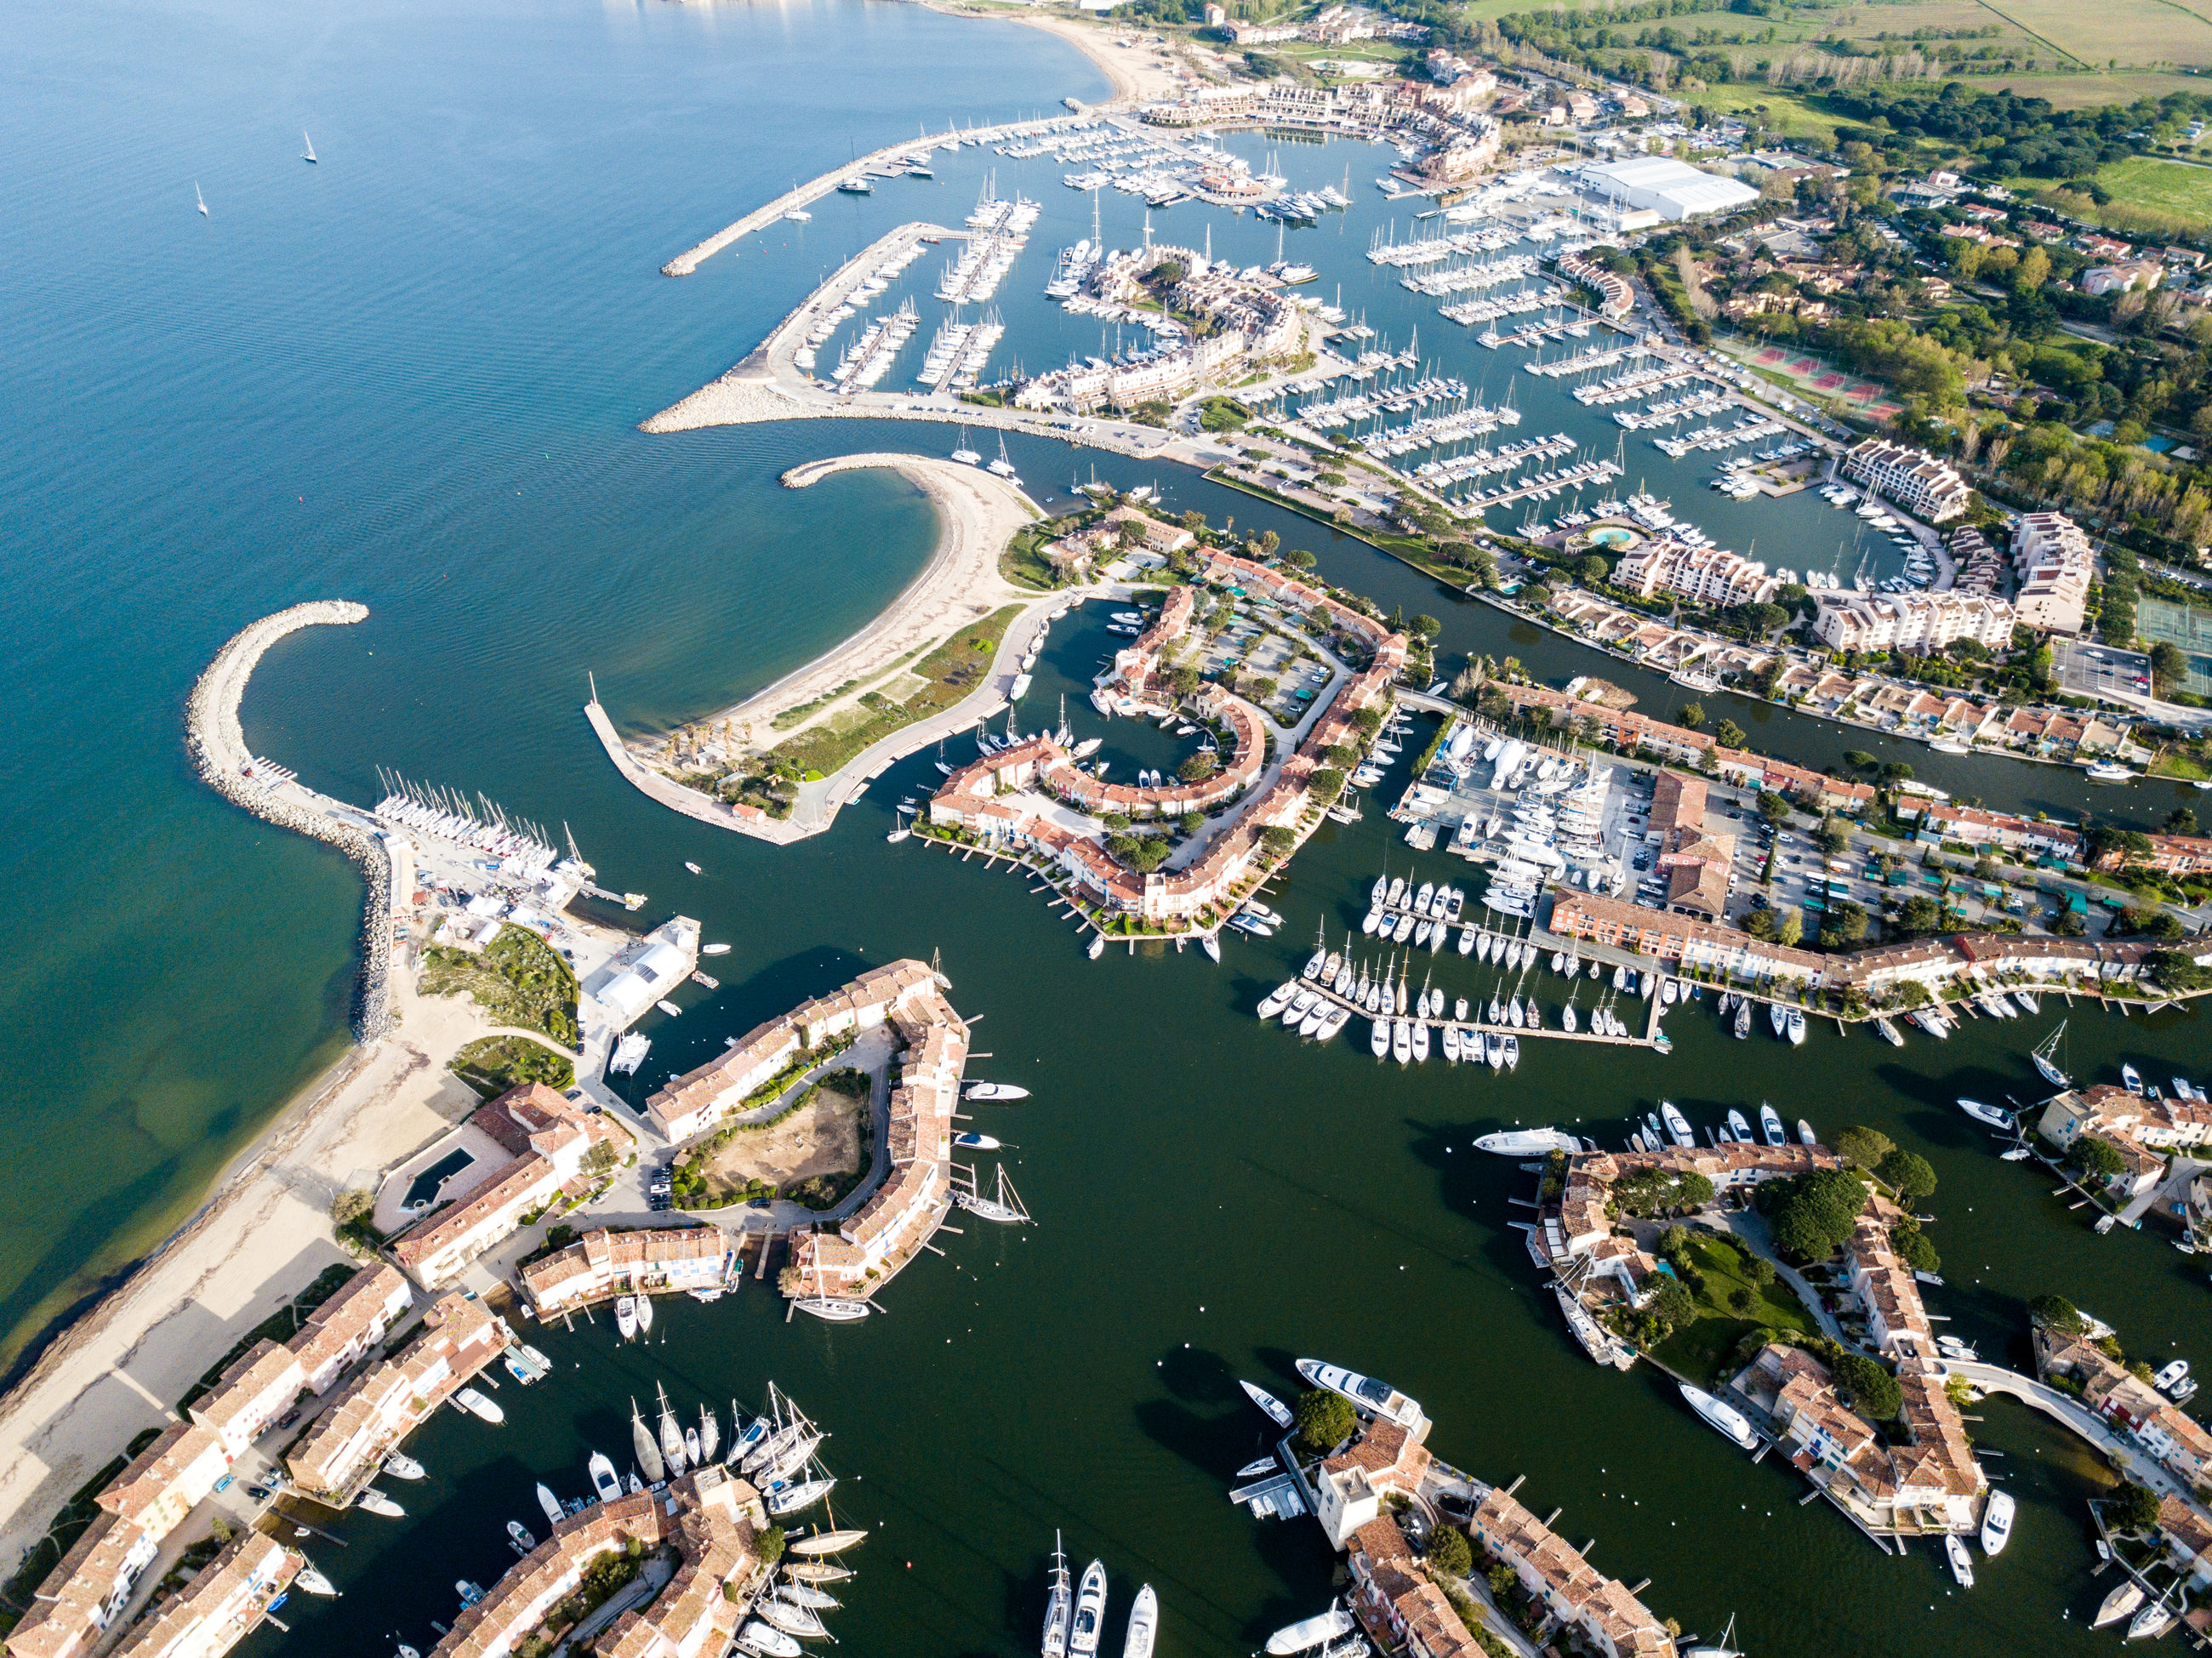 aerial view, water, high angle view, nature, building exterior, architecture, sea, day, built structure, transportation, scenics - nature, city, no people, beauty in nature, cityscape, outdoors, nautical vessel, land, beach, bay